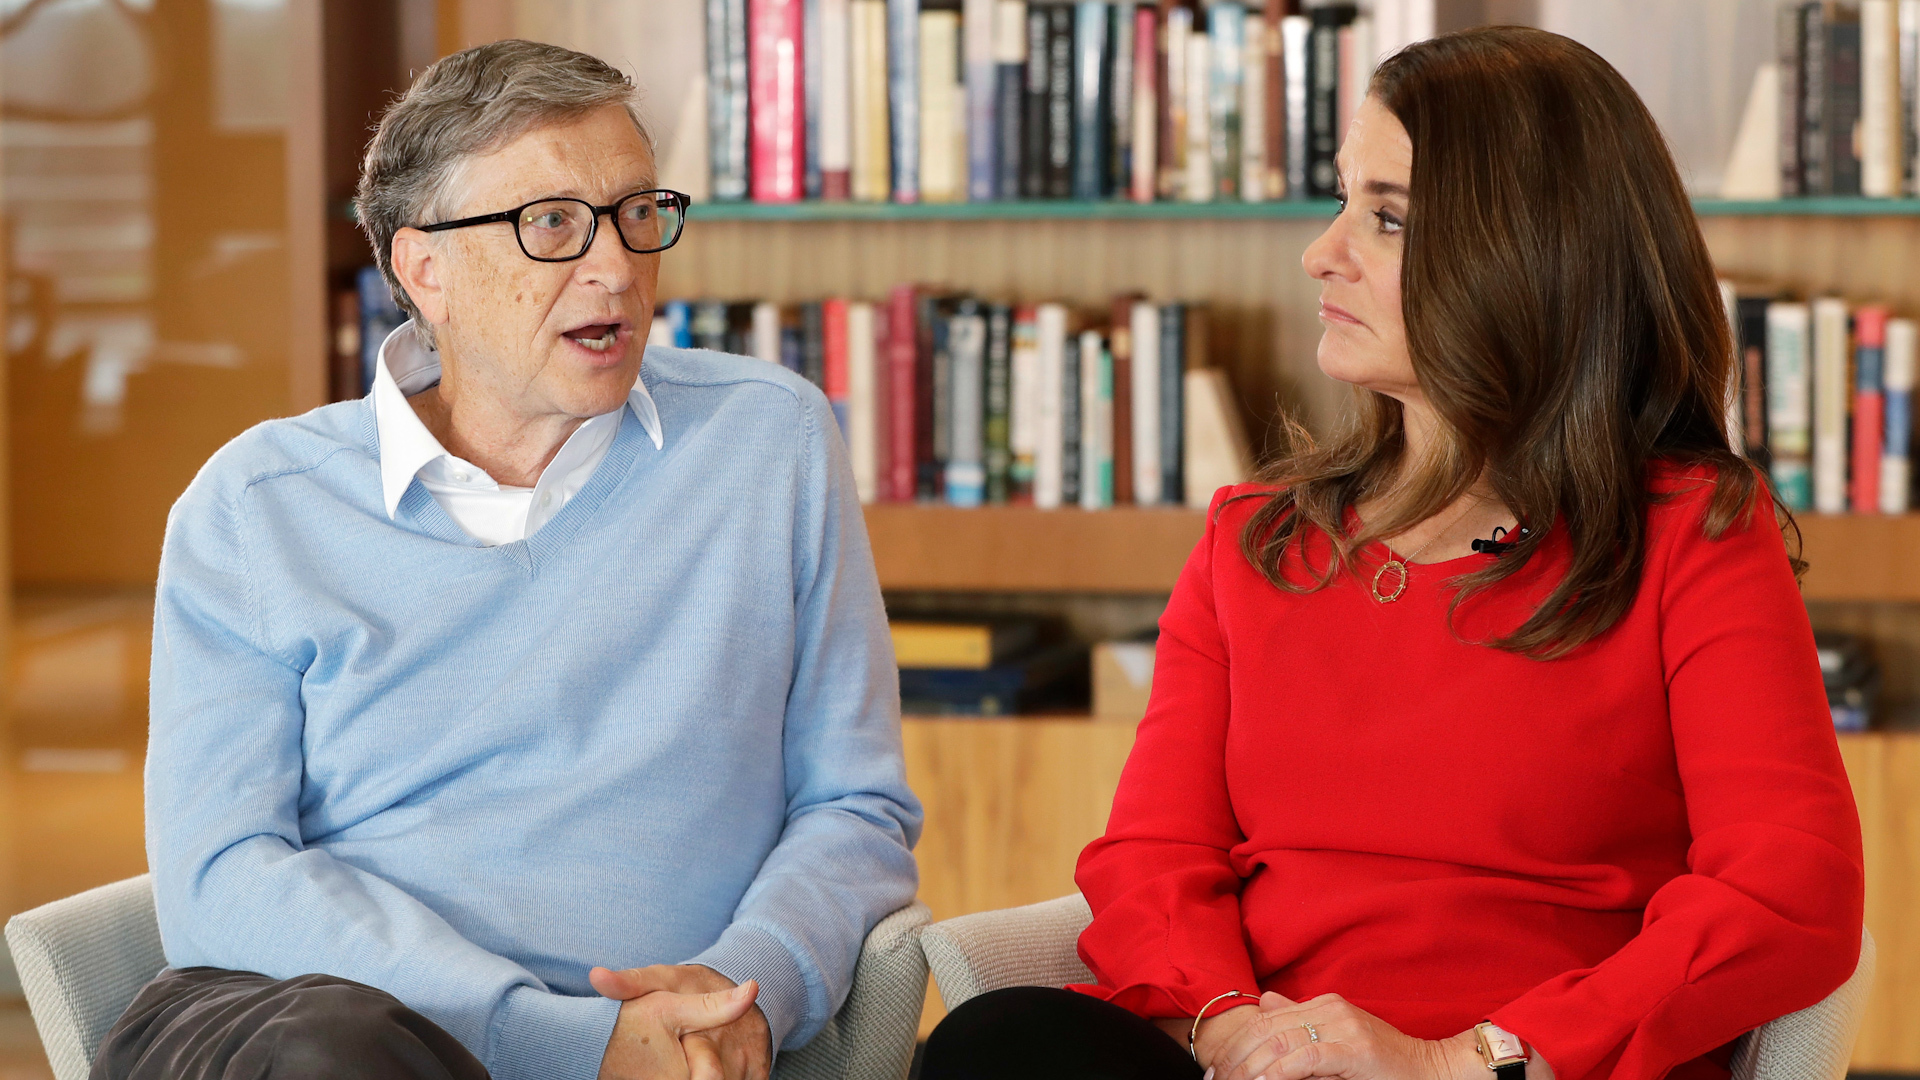 Bill Gate to Divorce his Wife Melinda Gates after 27 Years of Marriage